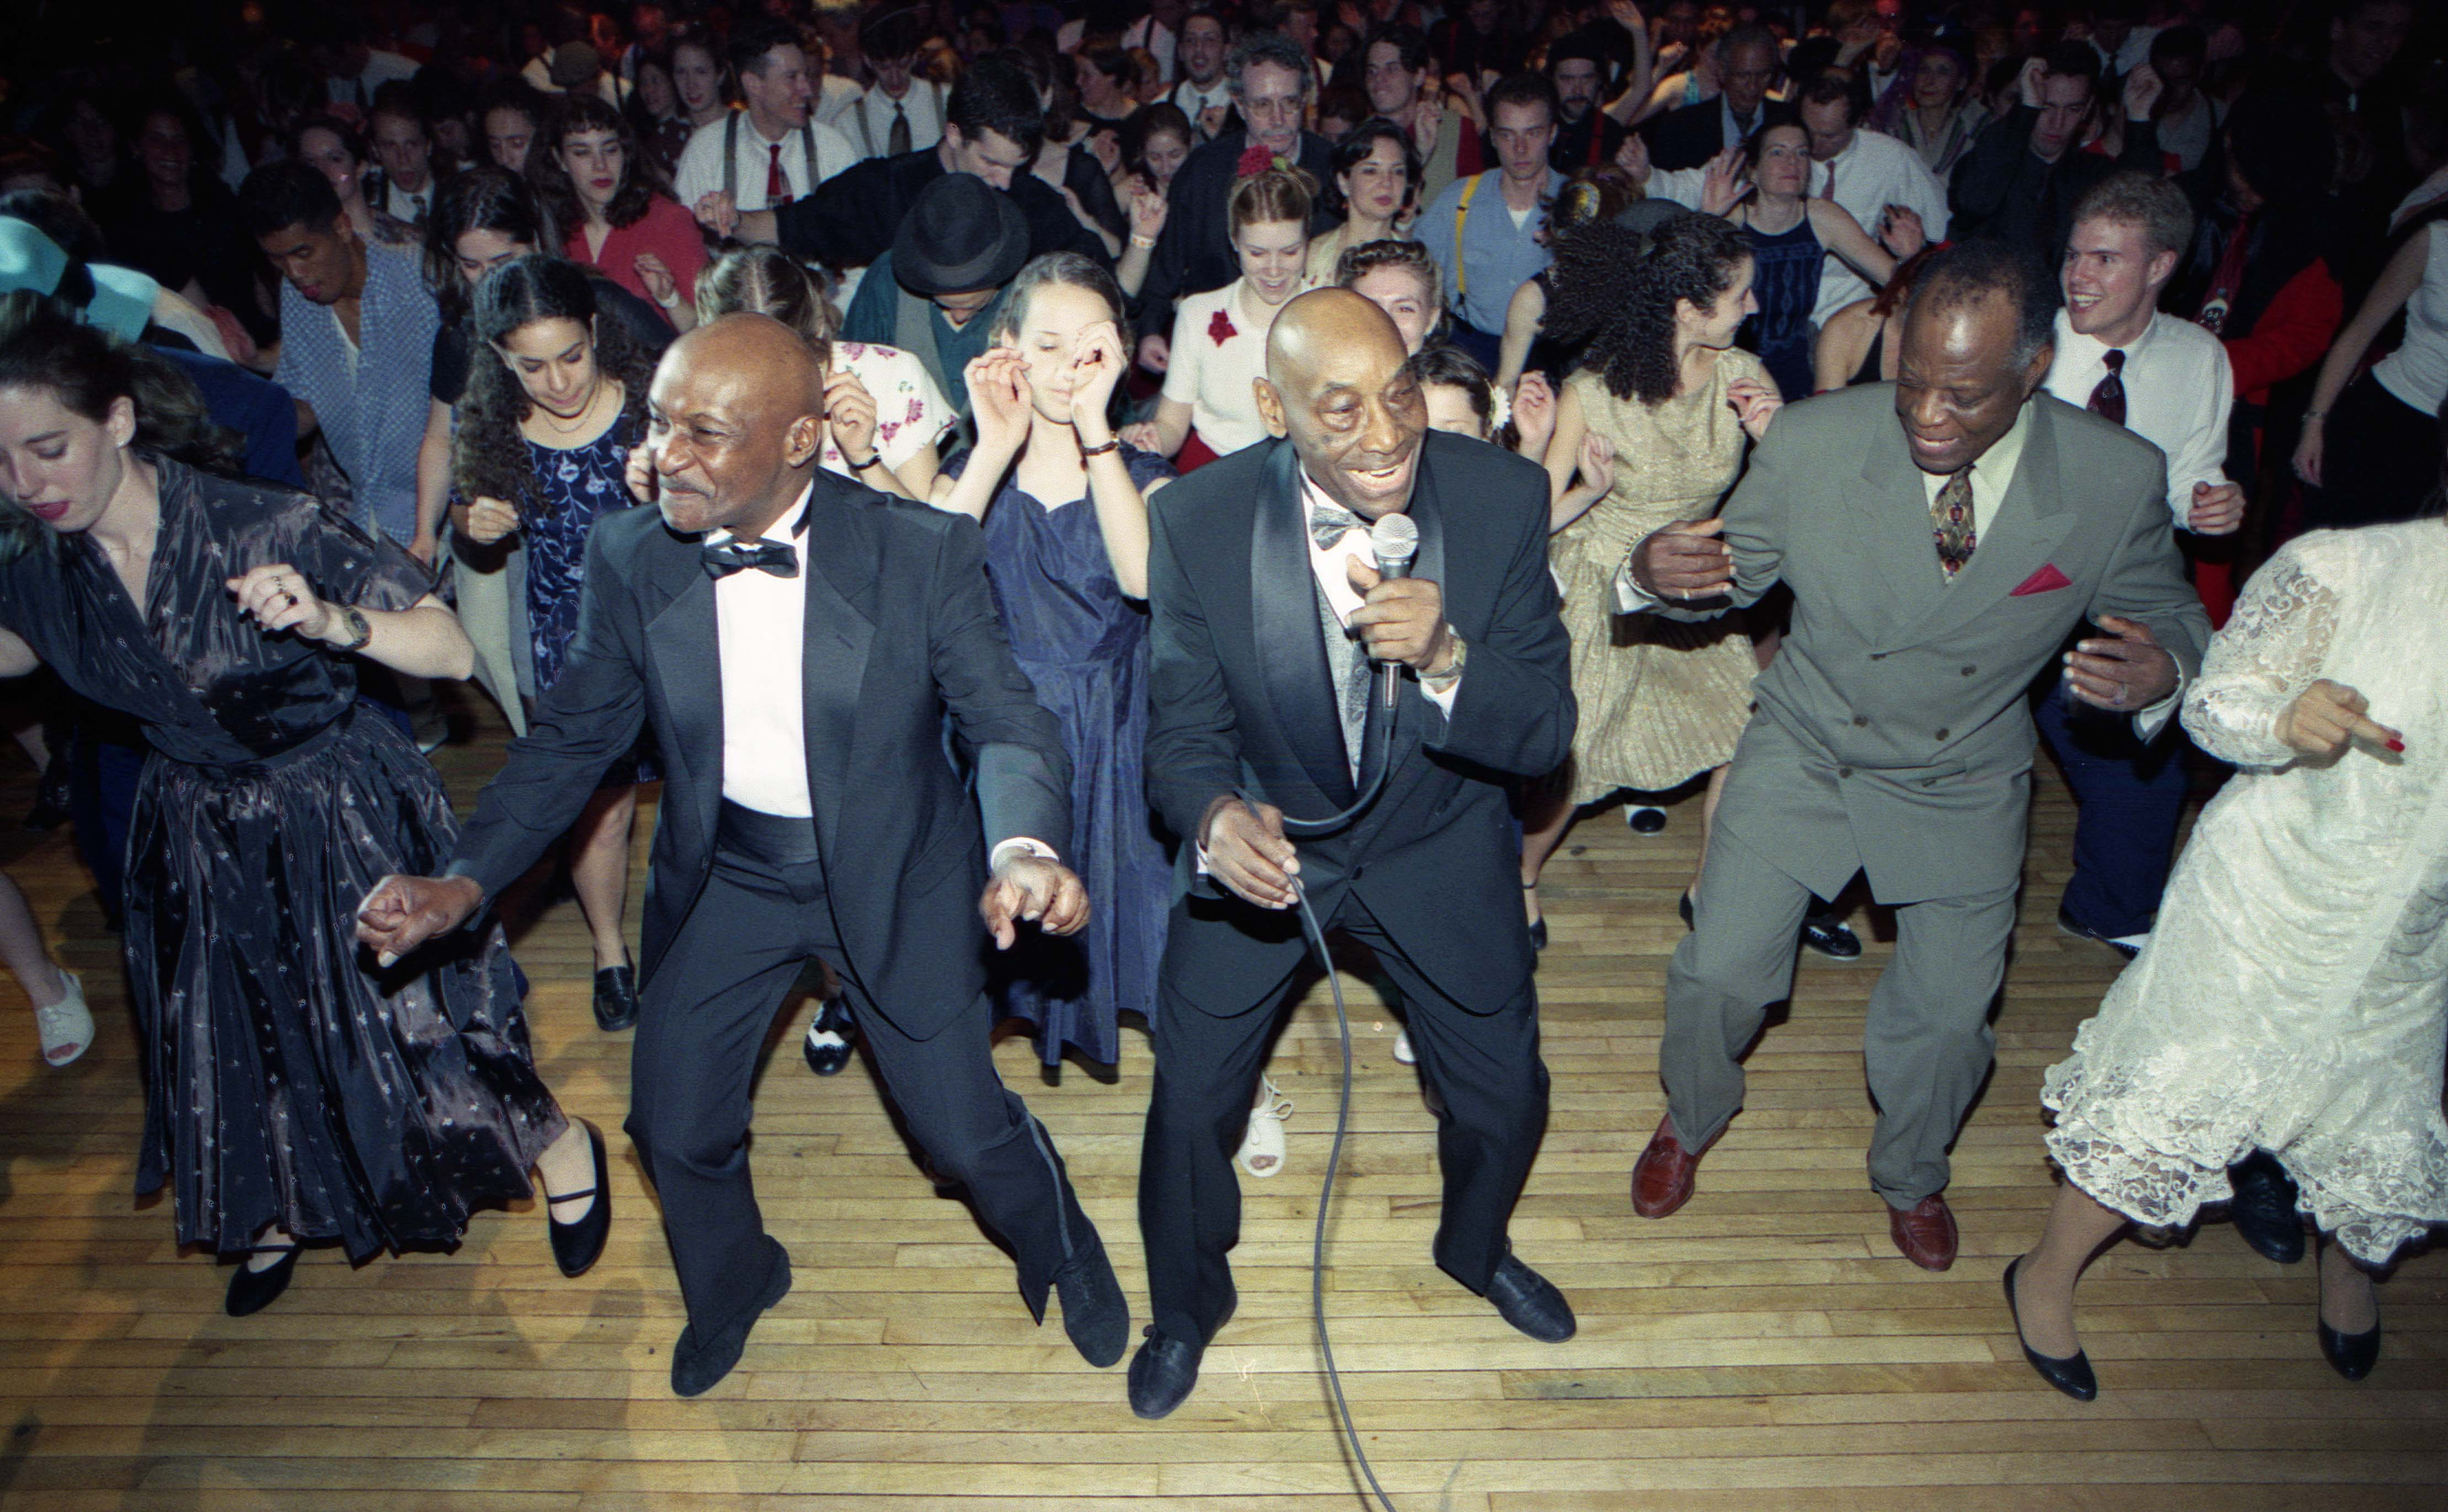 Frankie Manning Calling the Shim Sham at this 85th Birthday Celebration at Roseland Ballroom in 1999 - Recorded in Swingin' Away.  With Chazz and Charlie.